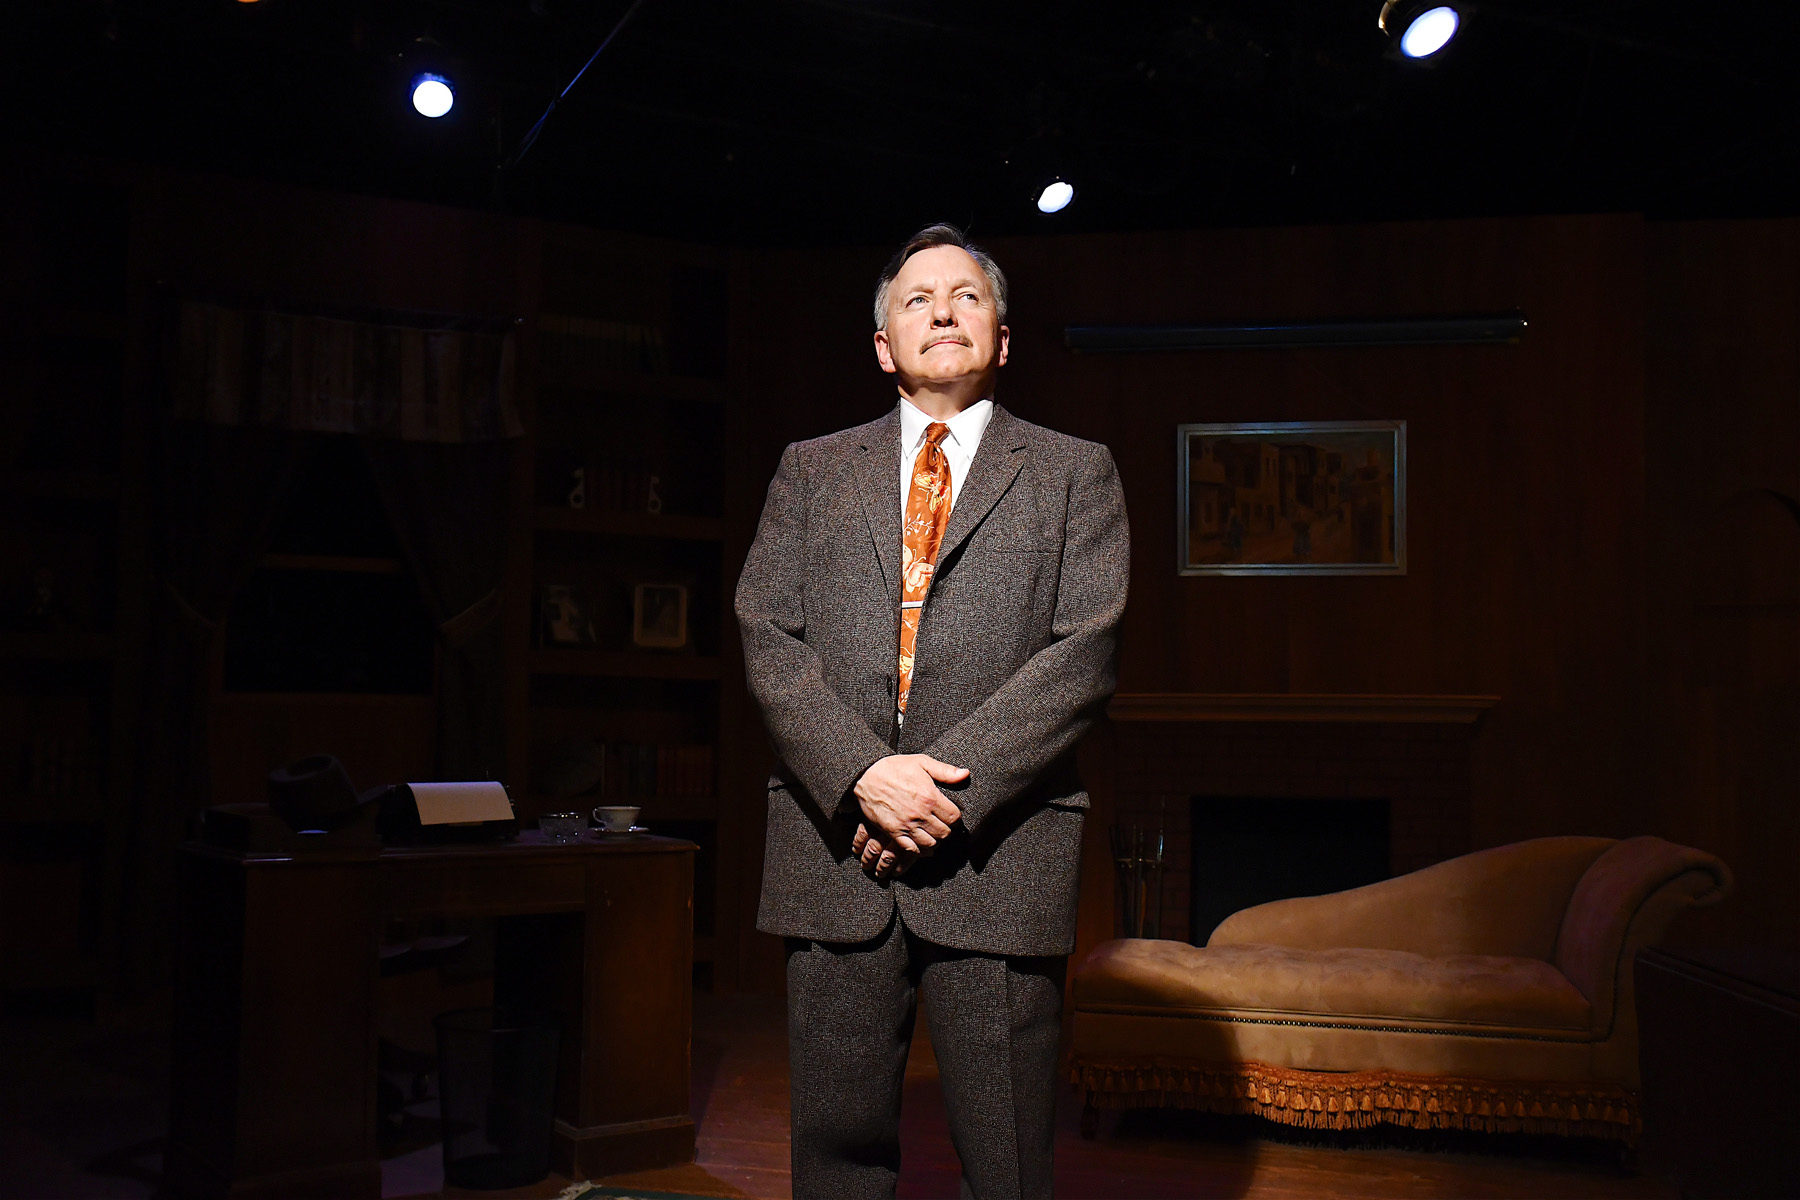 The conversation continues Sunday, July 3rd on stage with James Sherman! Join me for a talkback and Q & A session with James Sherman after the matinee performance at the Piven Theatre. Call: 800.838.3006  The Ben Hecht Show